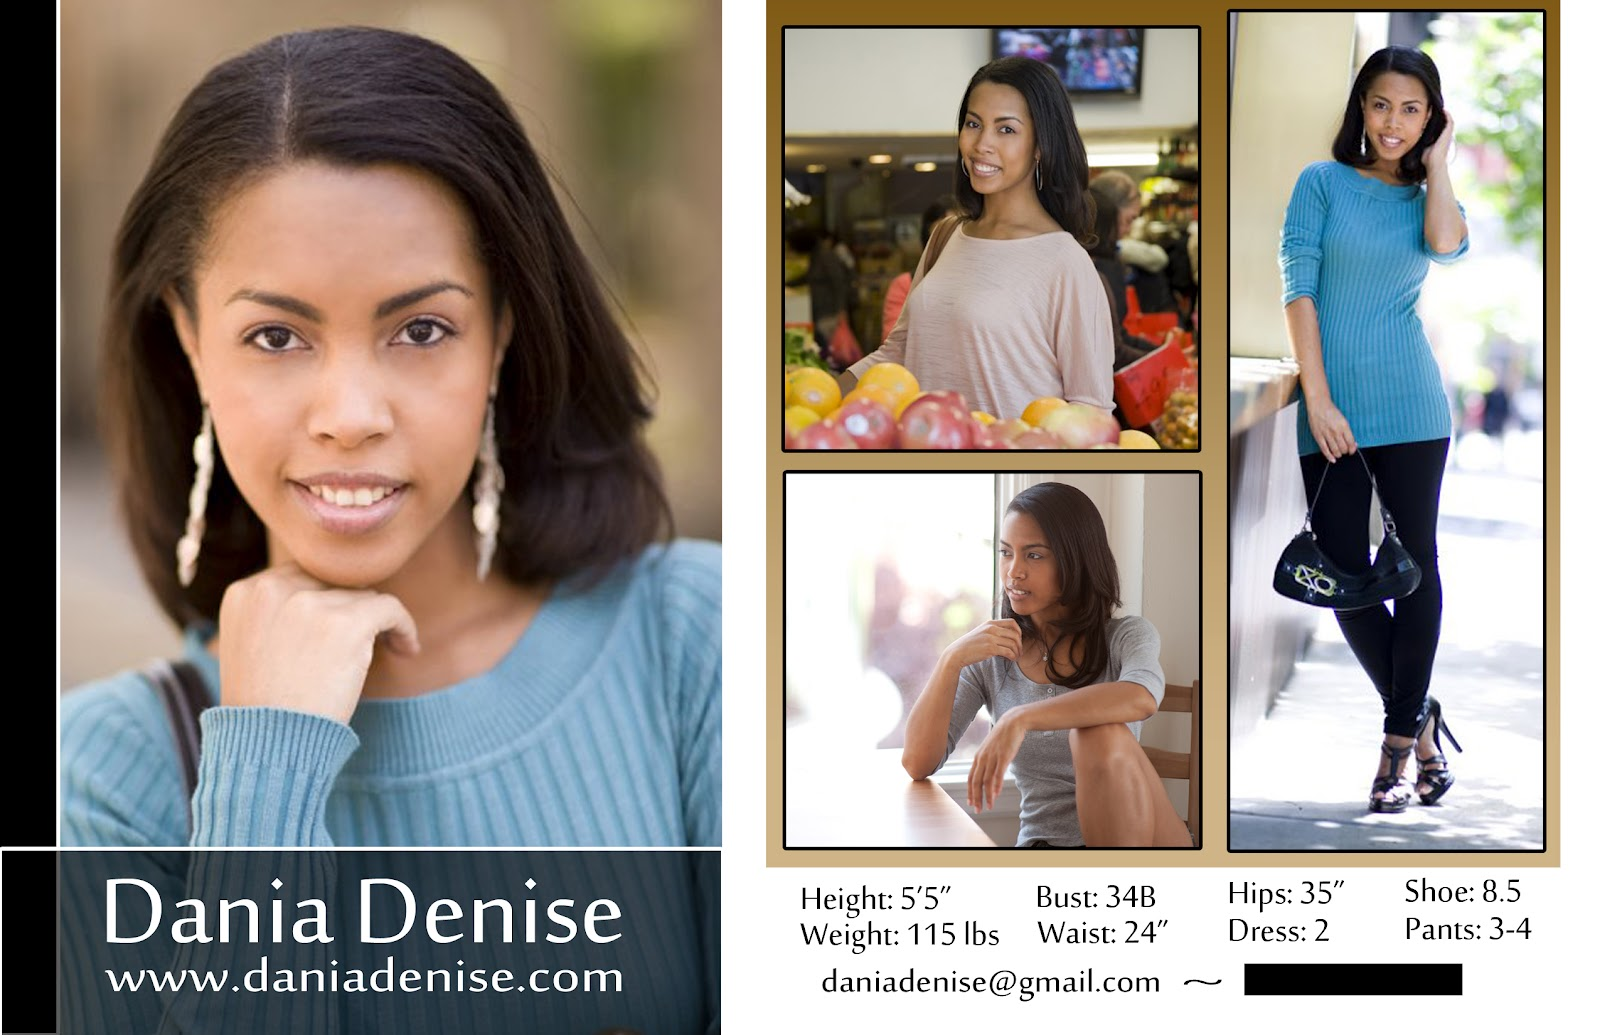 Modeling 101 - A Model's Diary: New Dania Denise Comp Card Designs